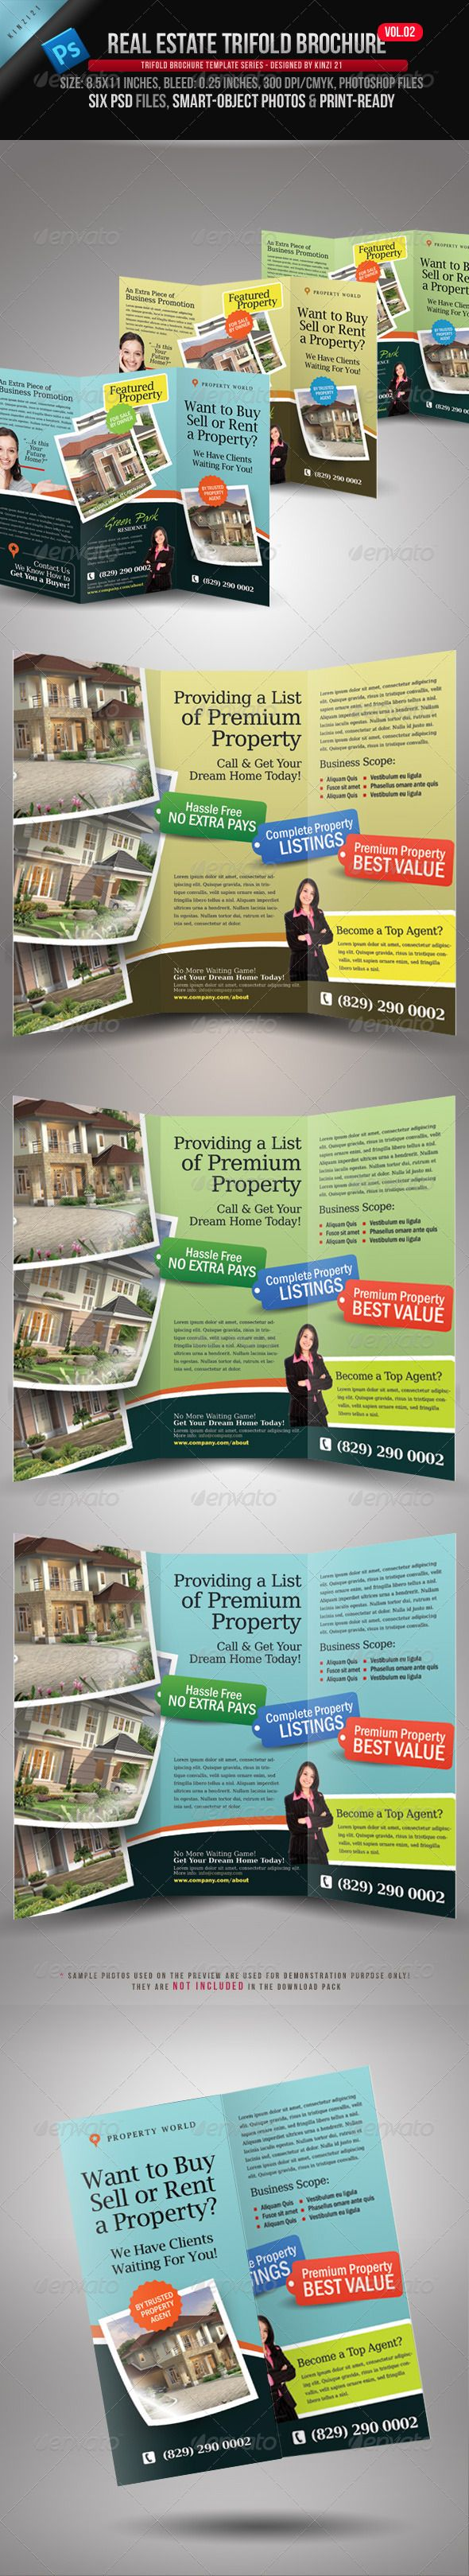 best images about real estate marketing ideas real estate trifold brochure vol 02